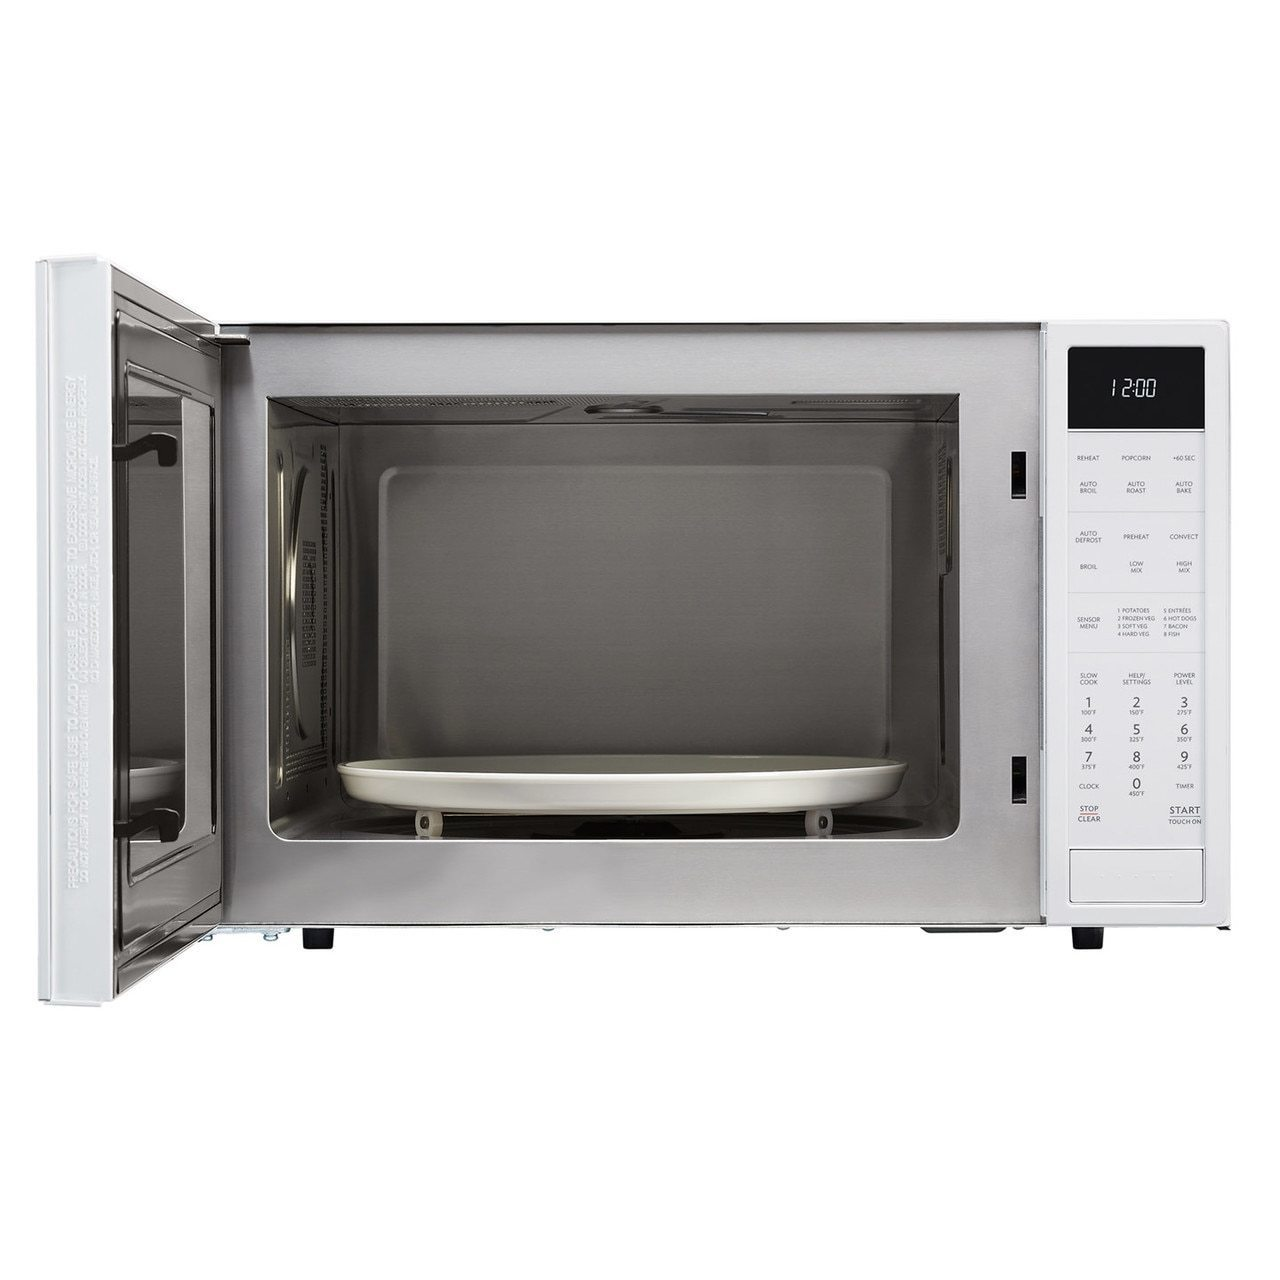 Carousel Convection Microwave Oven